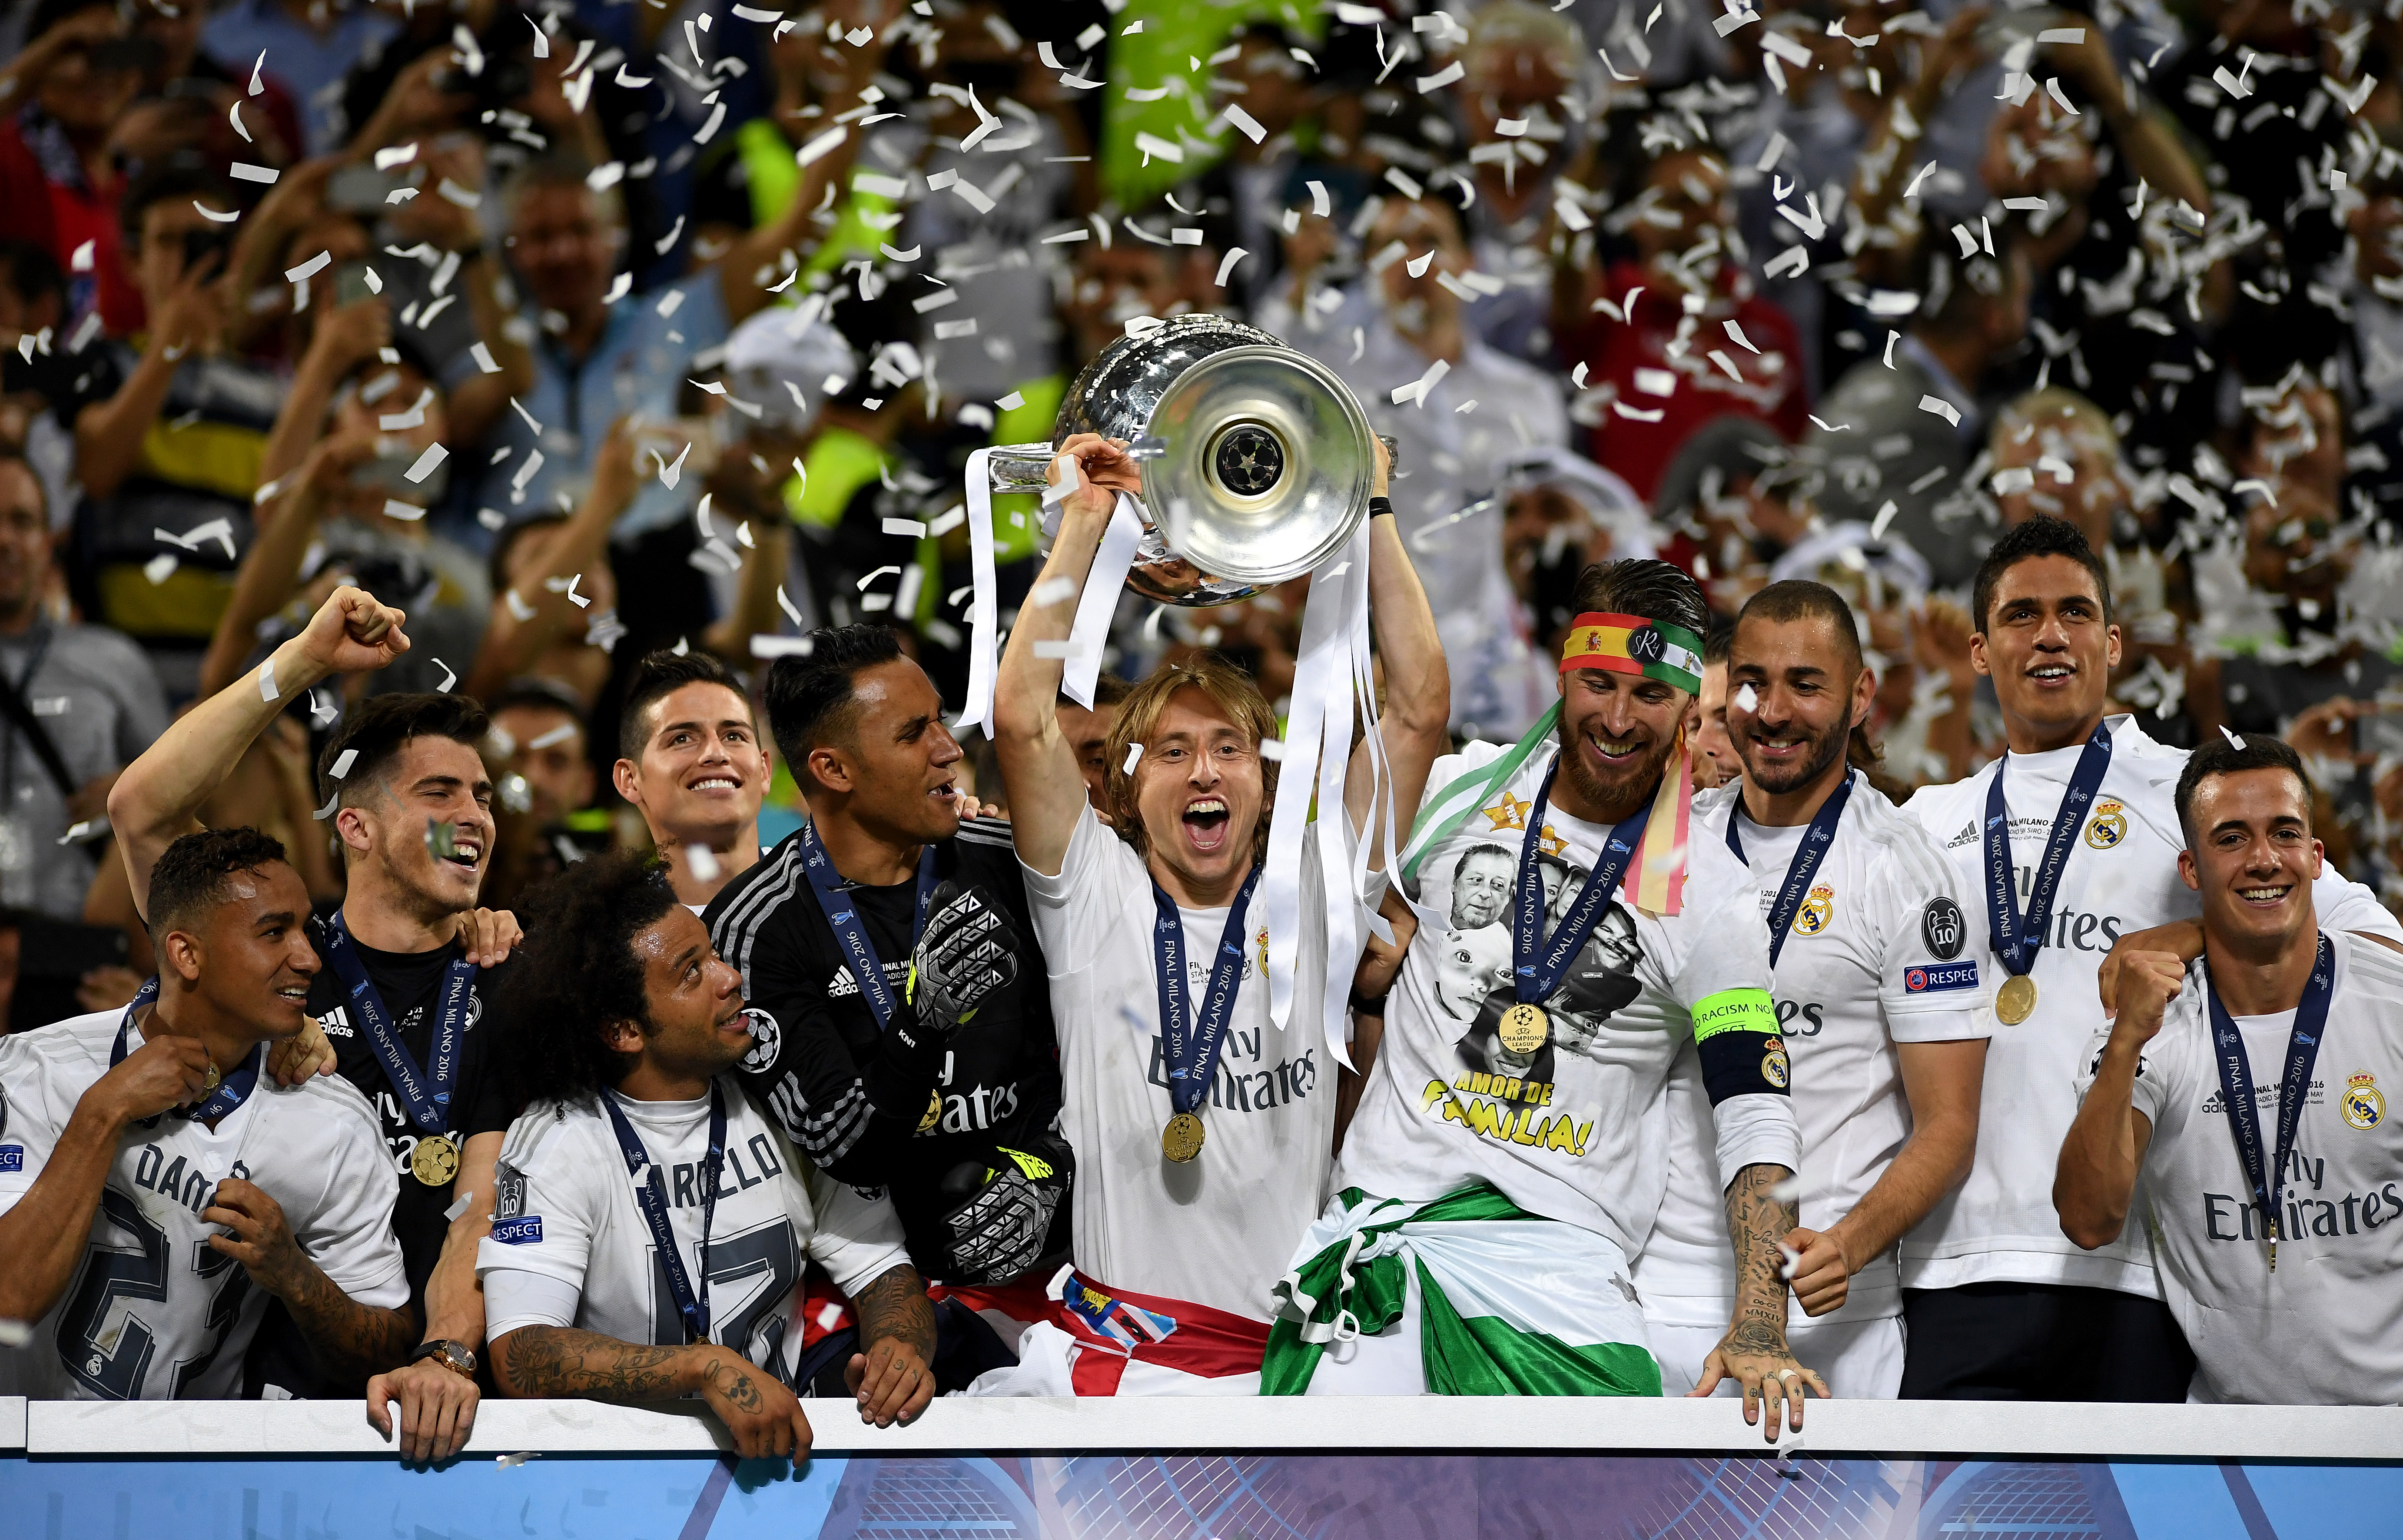 MILAN, ITALY - MAY 28: Luka Modric of Real Madrid lifts the Champions League trophy after the UEFA Champions League Final match between Real Madrid and Club Atletico de Madrid at Stadio Giuseppe Meazza on May 28, 2016 in Milan, Italy. (Photo by Laurence Griffiths/Getty Images)